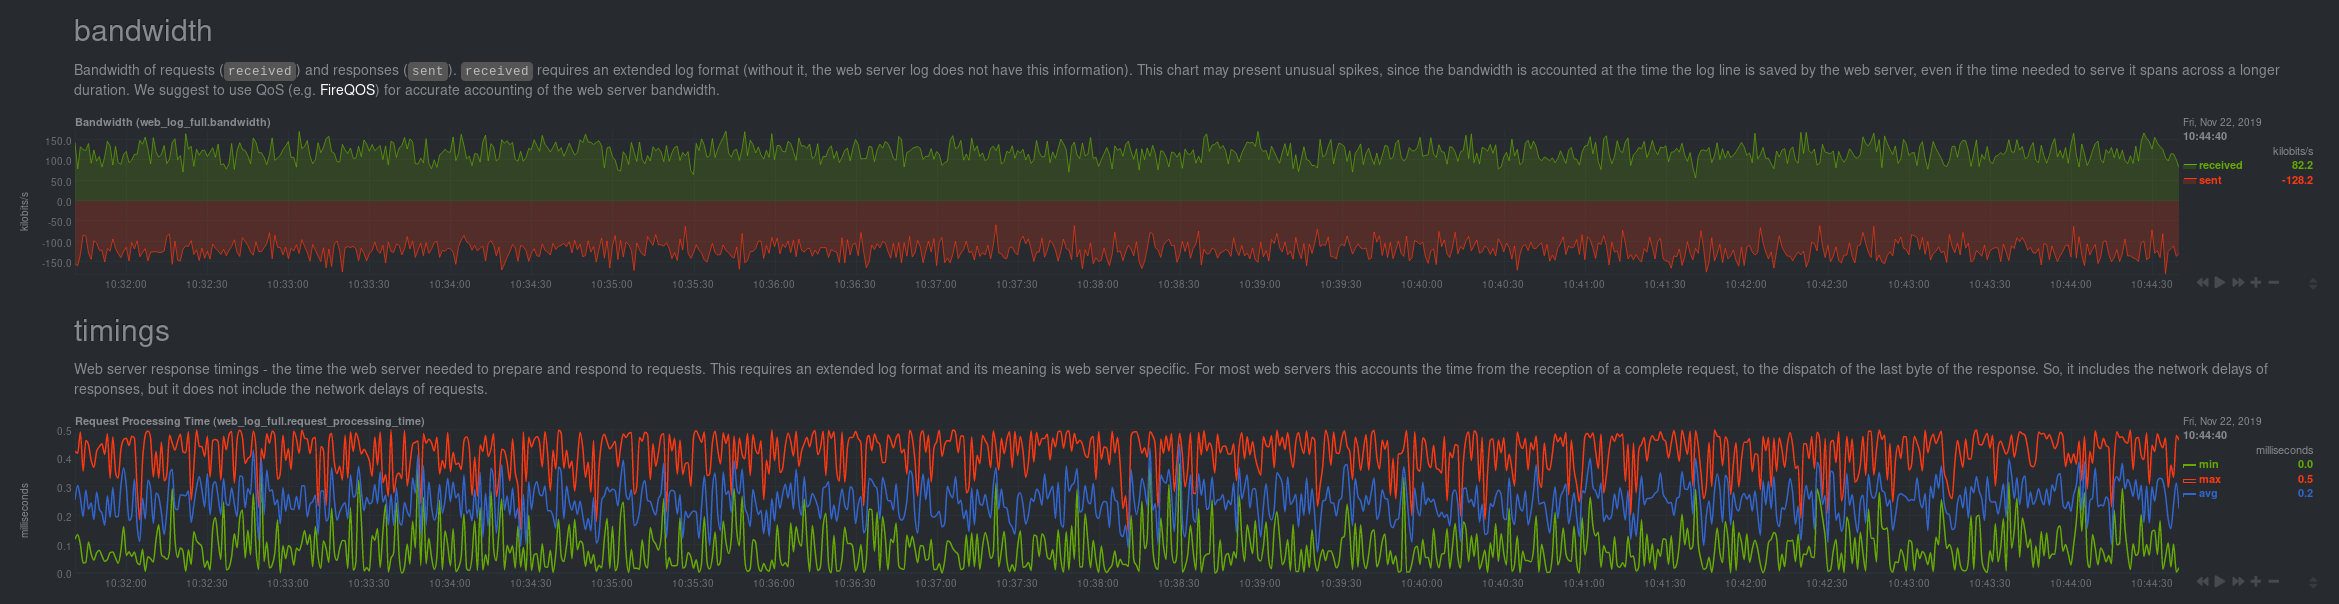 Example of real-time web server log metrics in Netdata's dashboard